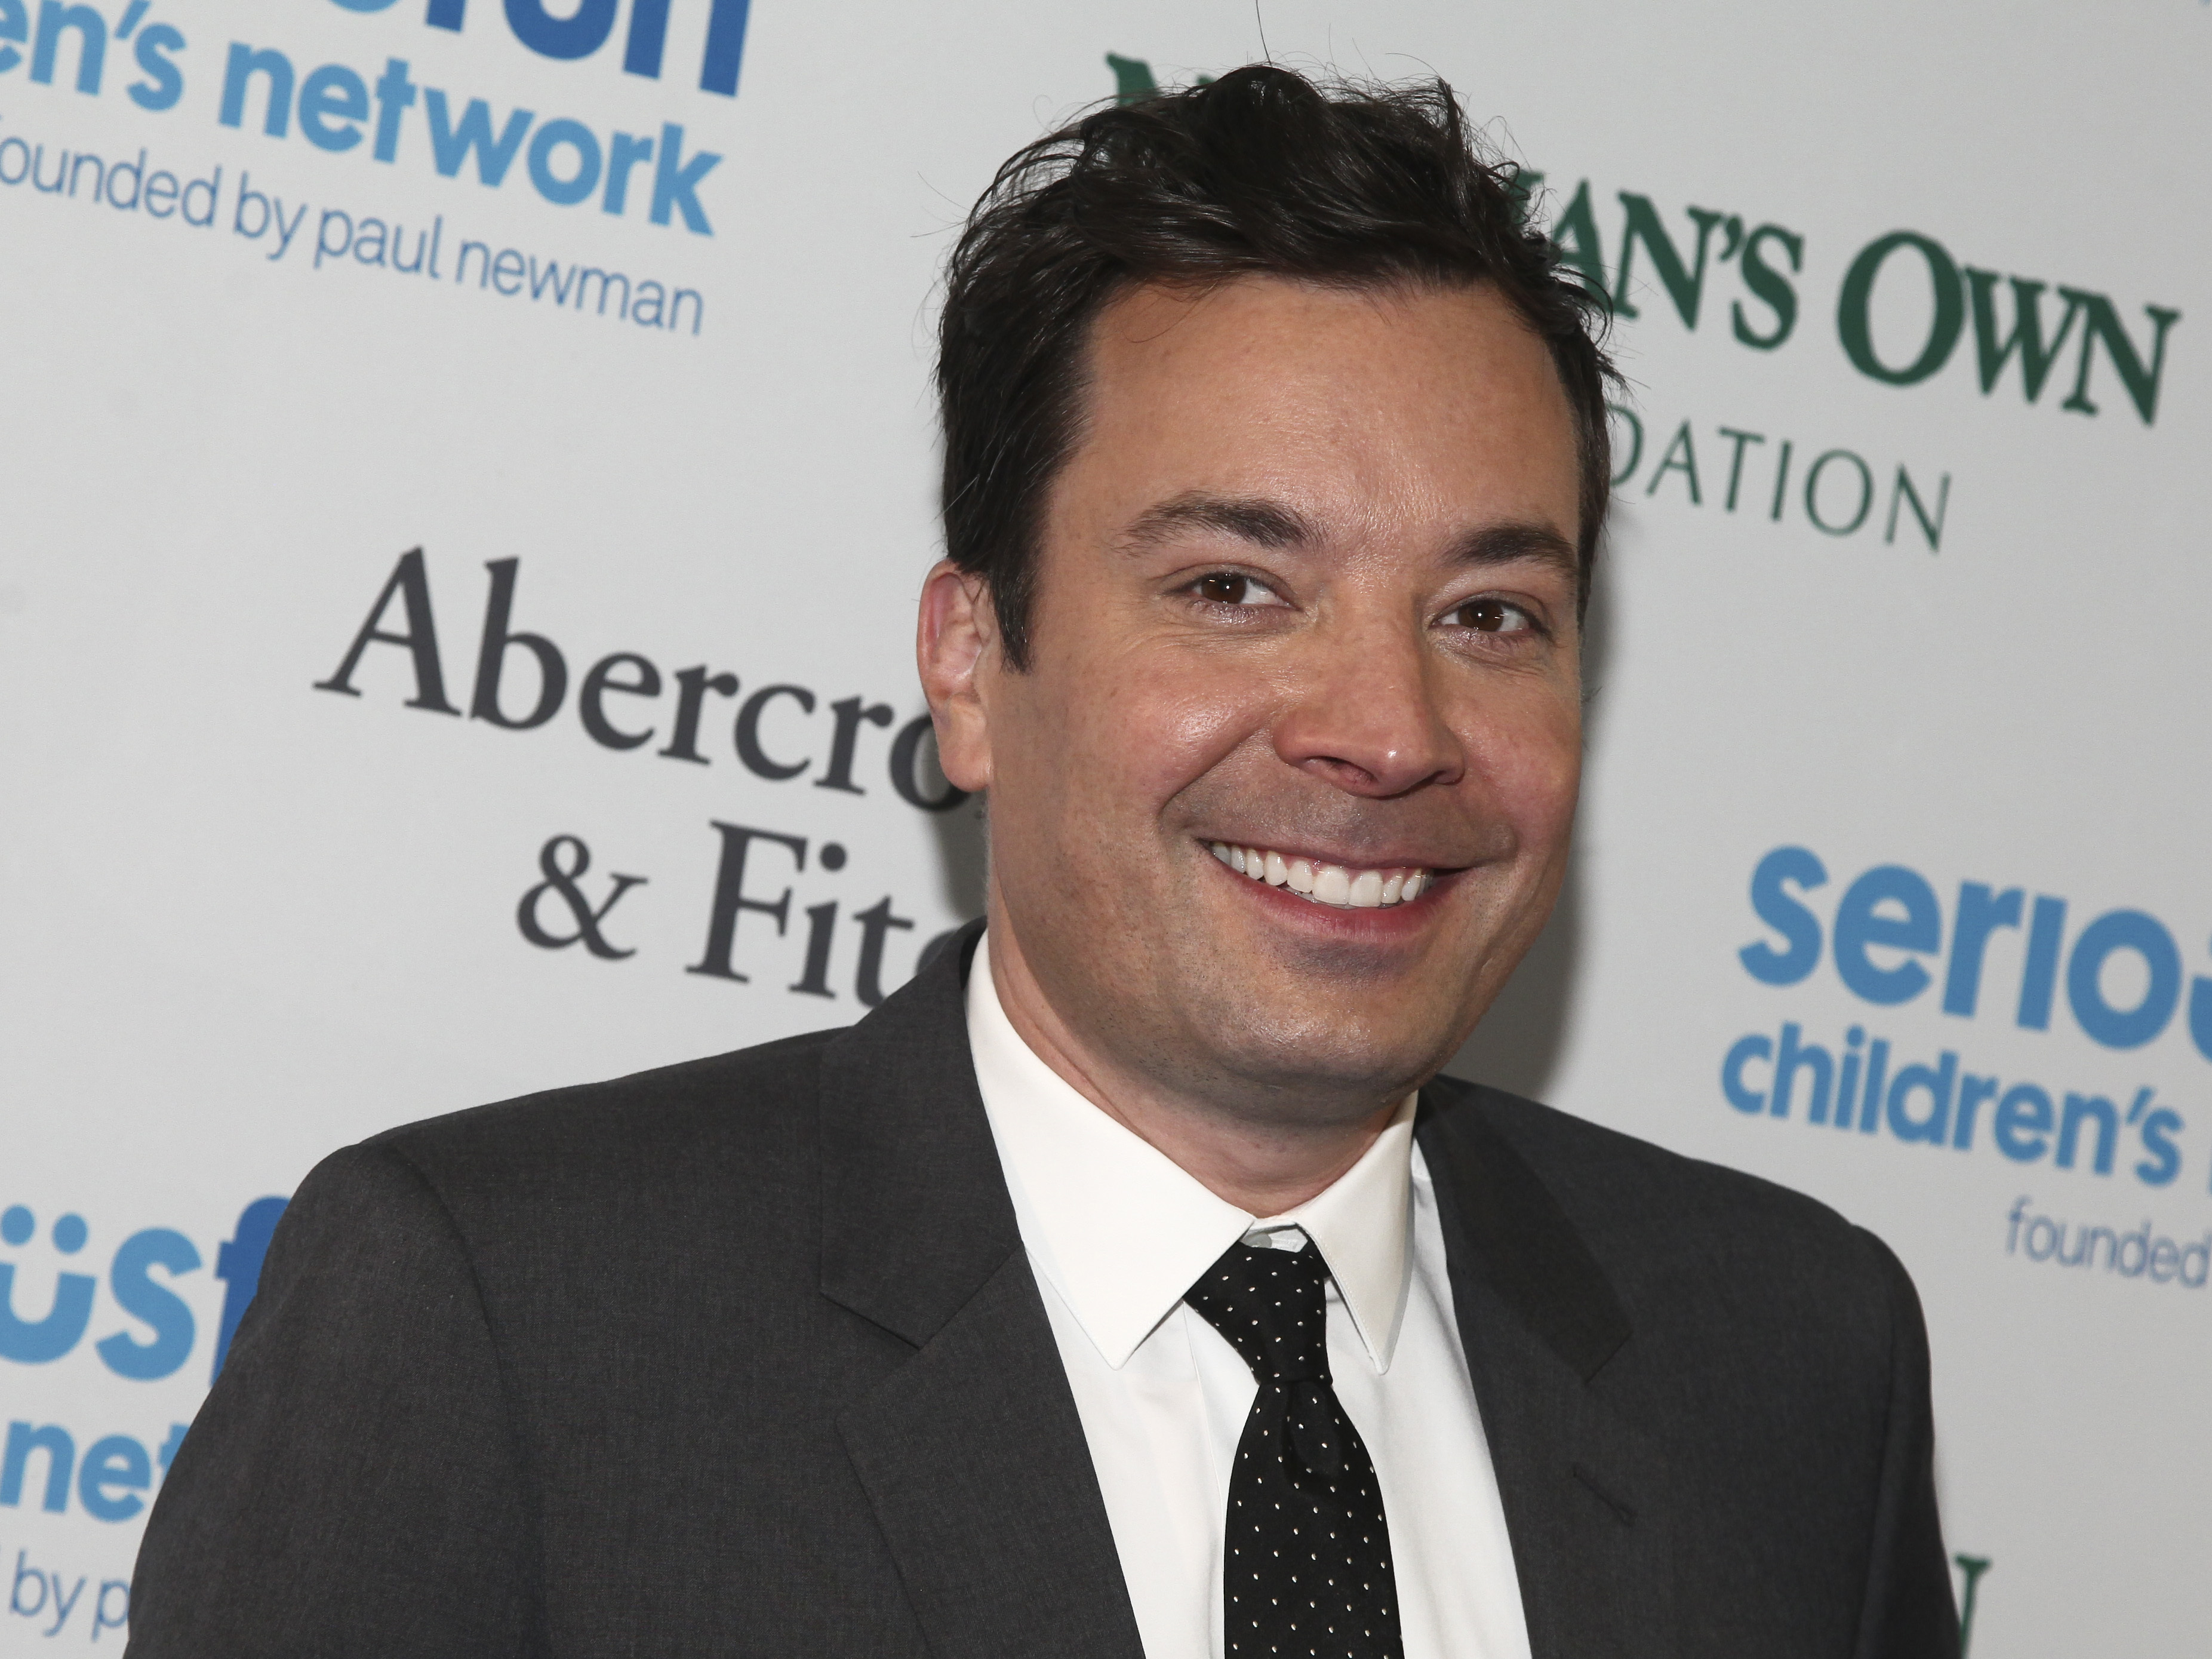 Jimmy Fallon attends the SeriousFun Children's Network Gala at Pier Sixty in New York in 2017.